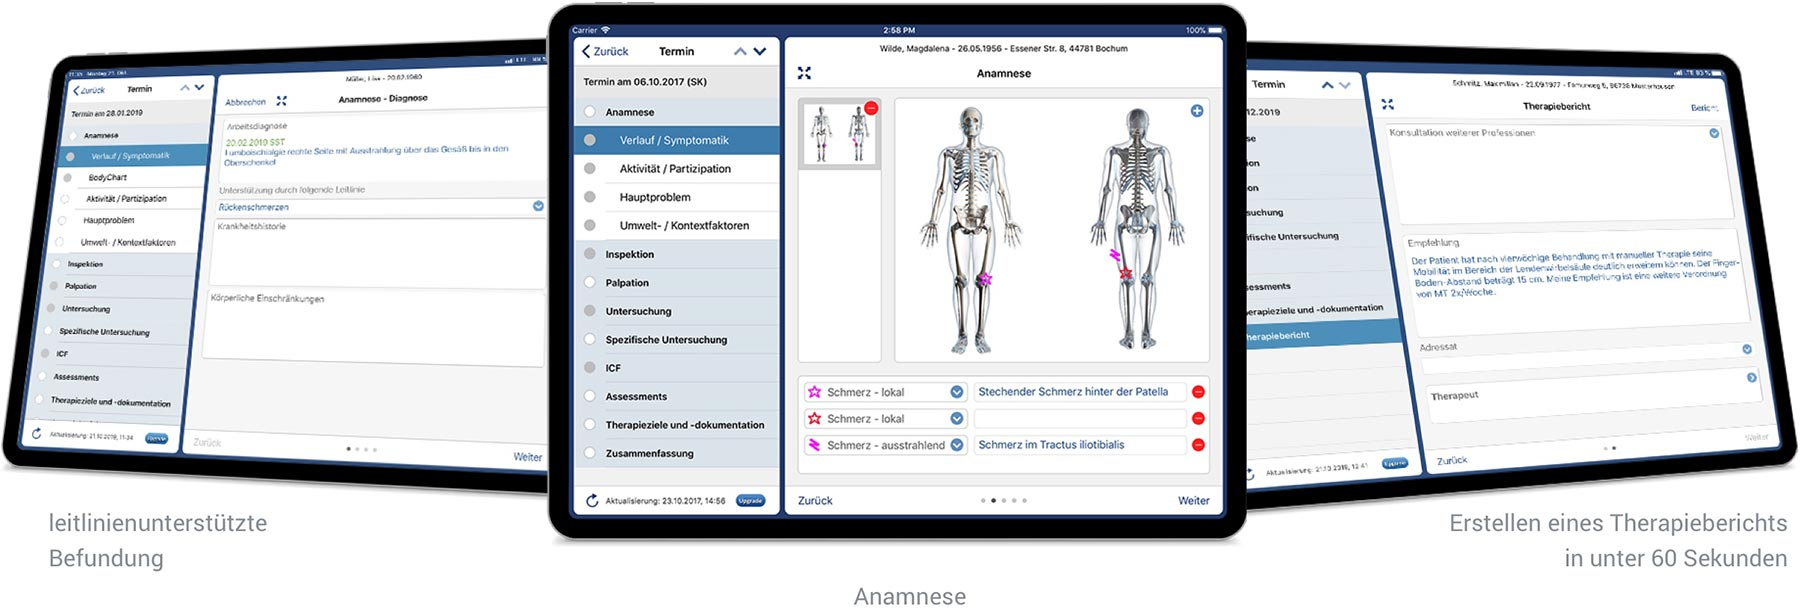 Therapiedokumentation, Mess- und Testverfahren - TheraAssist App